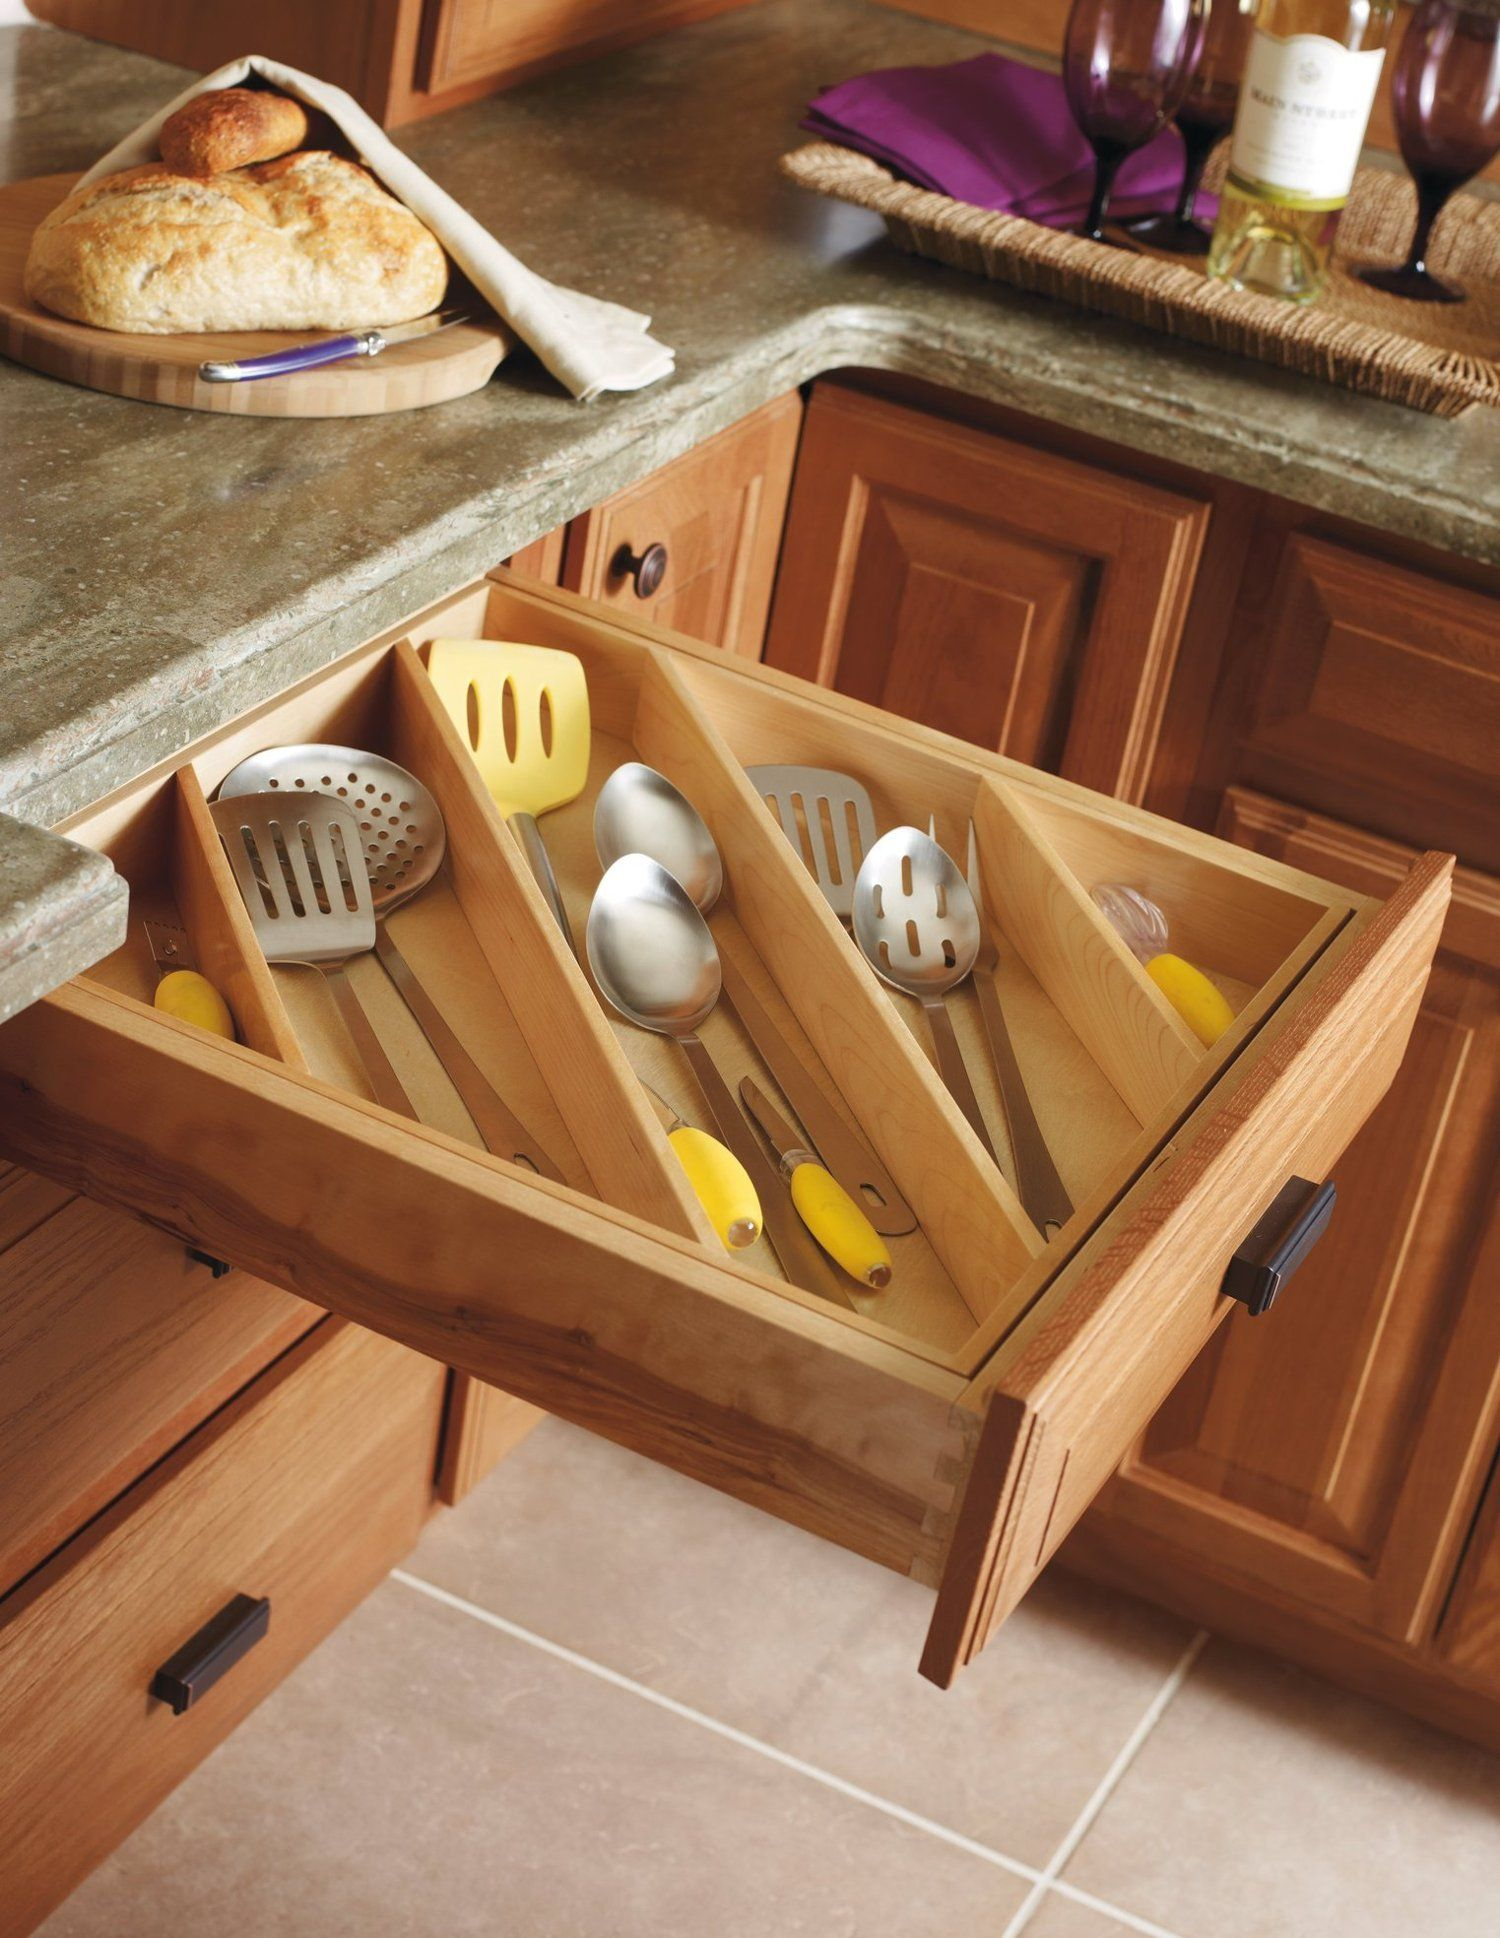 Make the most of kitchen drawers by organizing diagonally kitchen